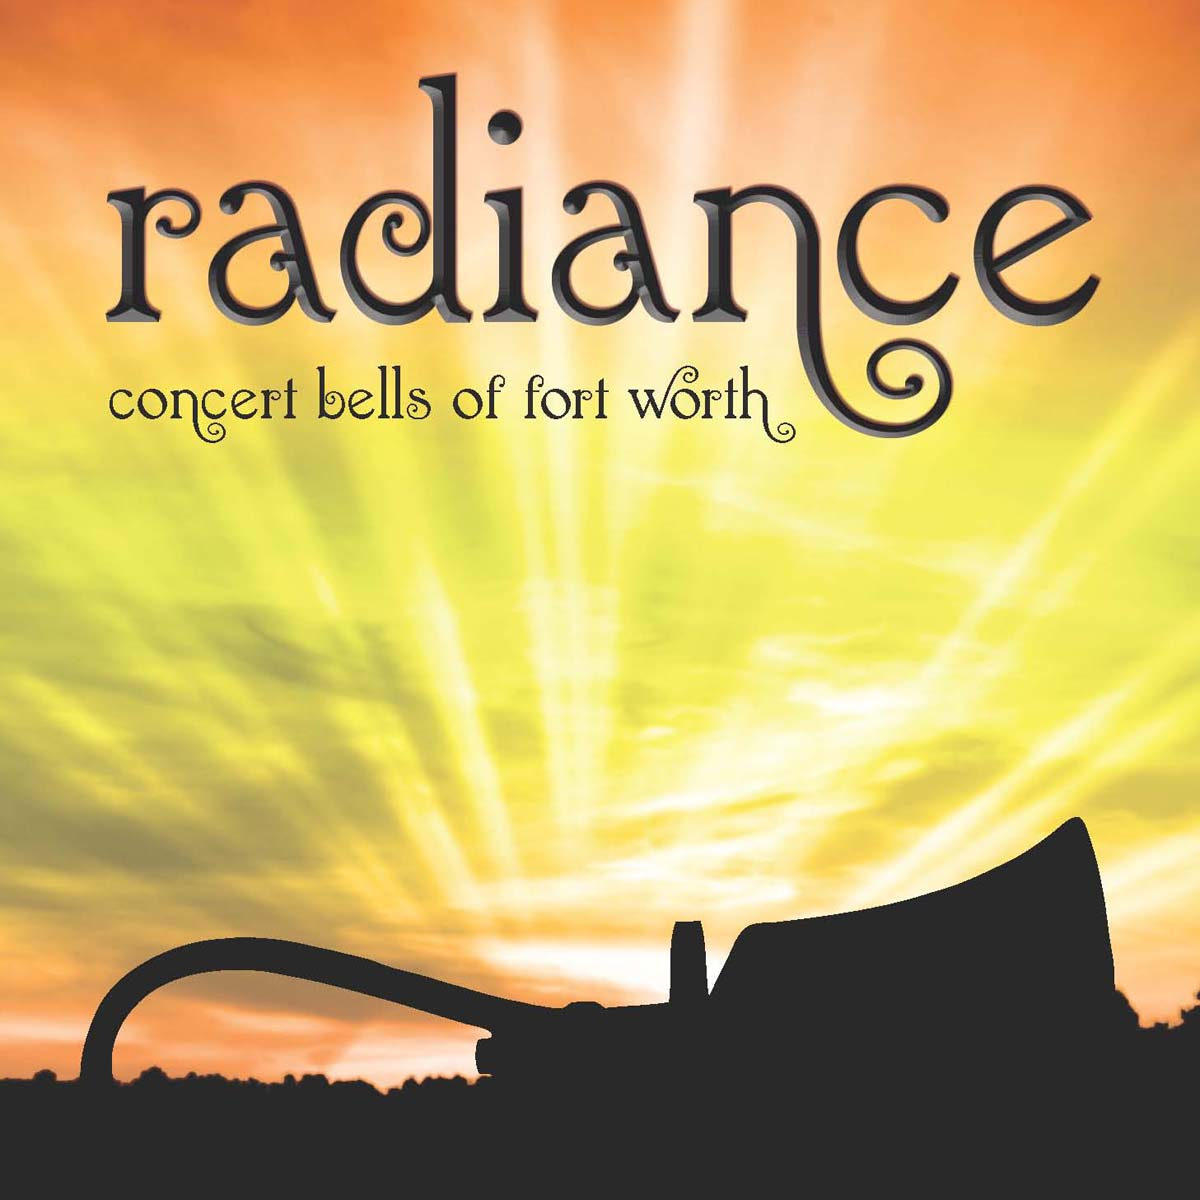 Radiance, featuring Concert Bells of Fort Worth